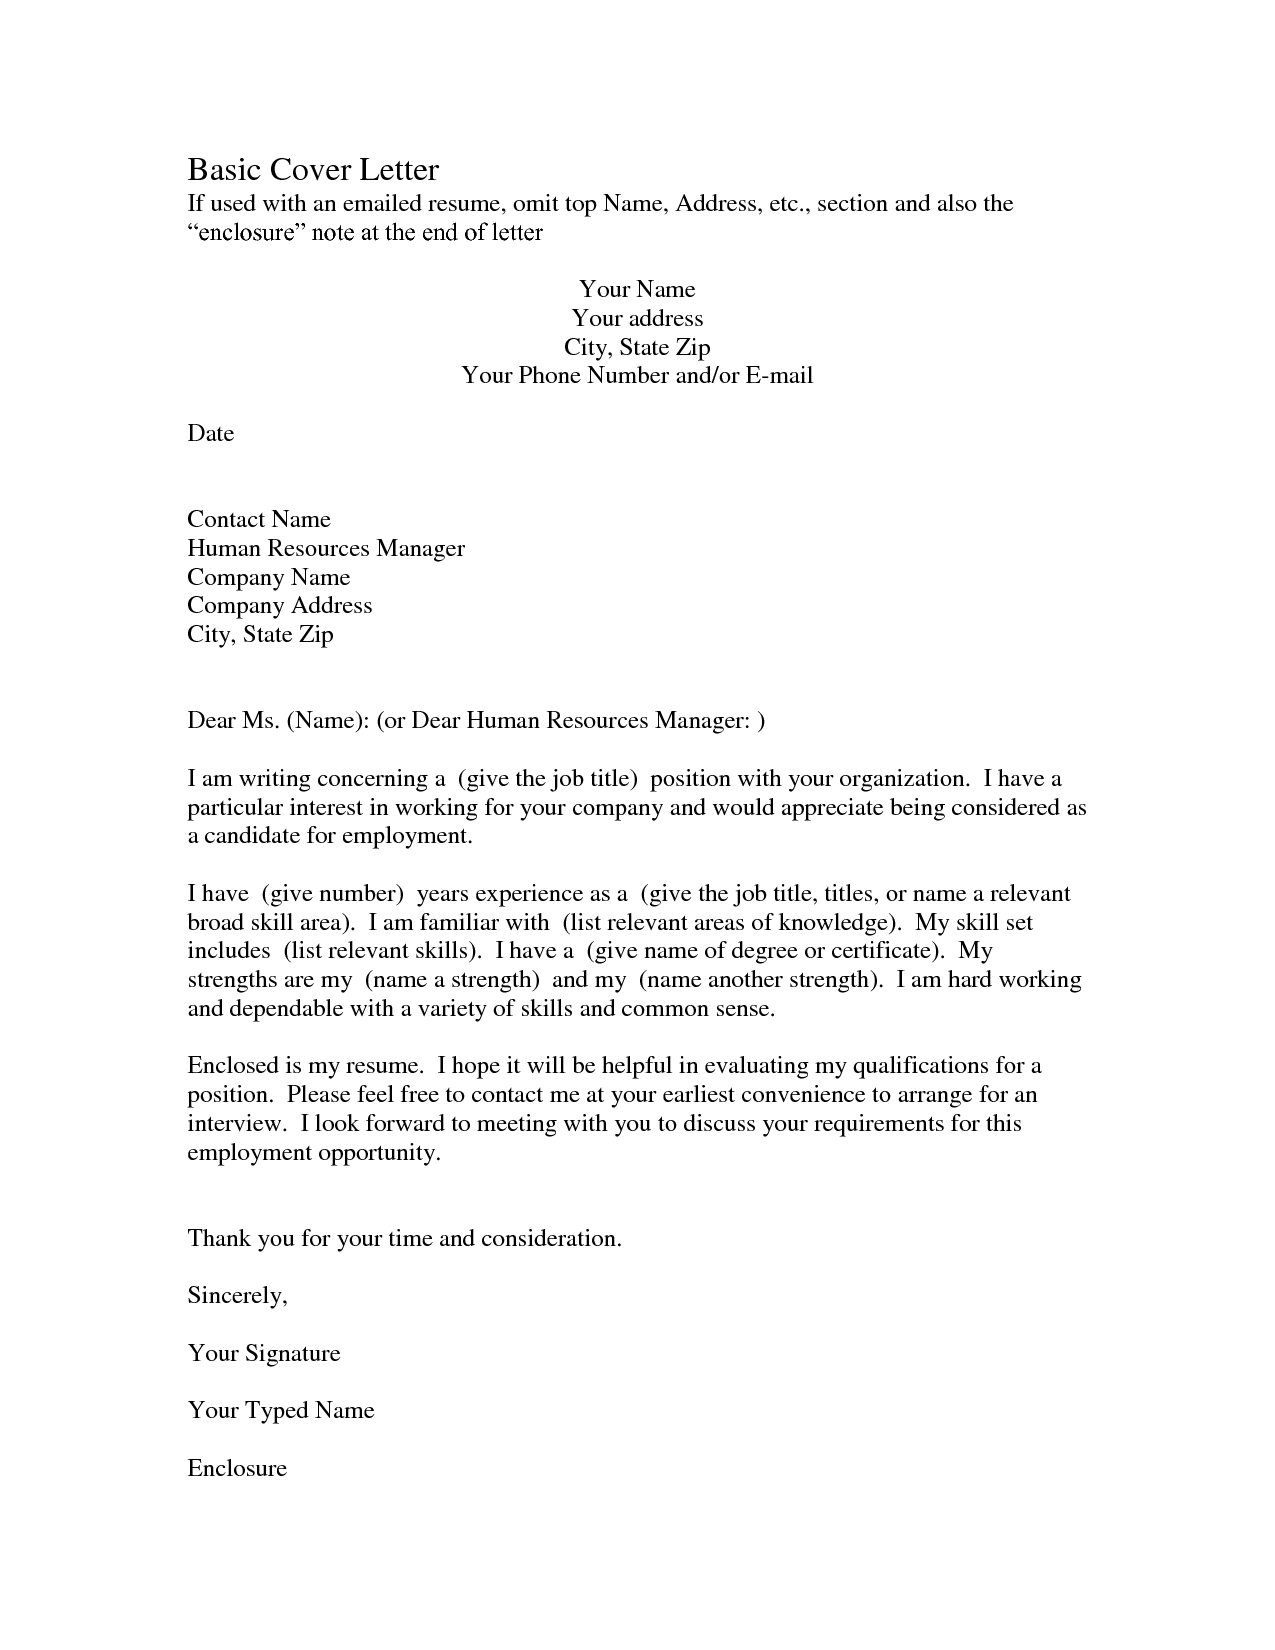 Cover Letter Template Basic Coverlettertemplate